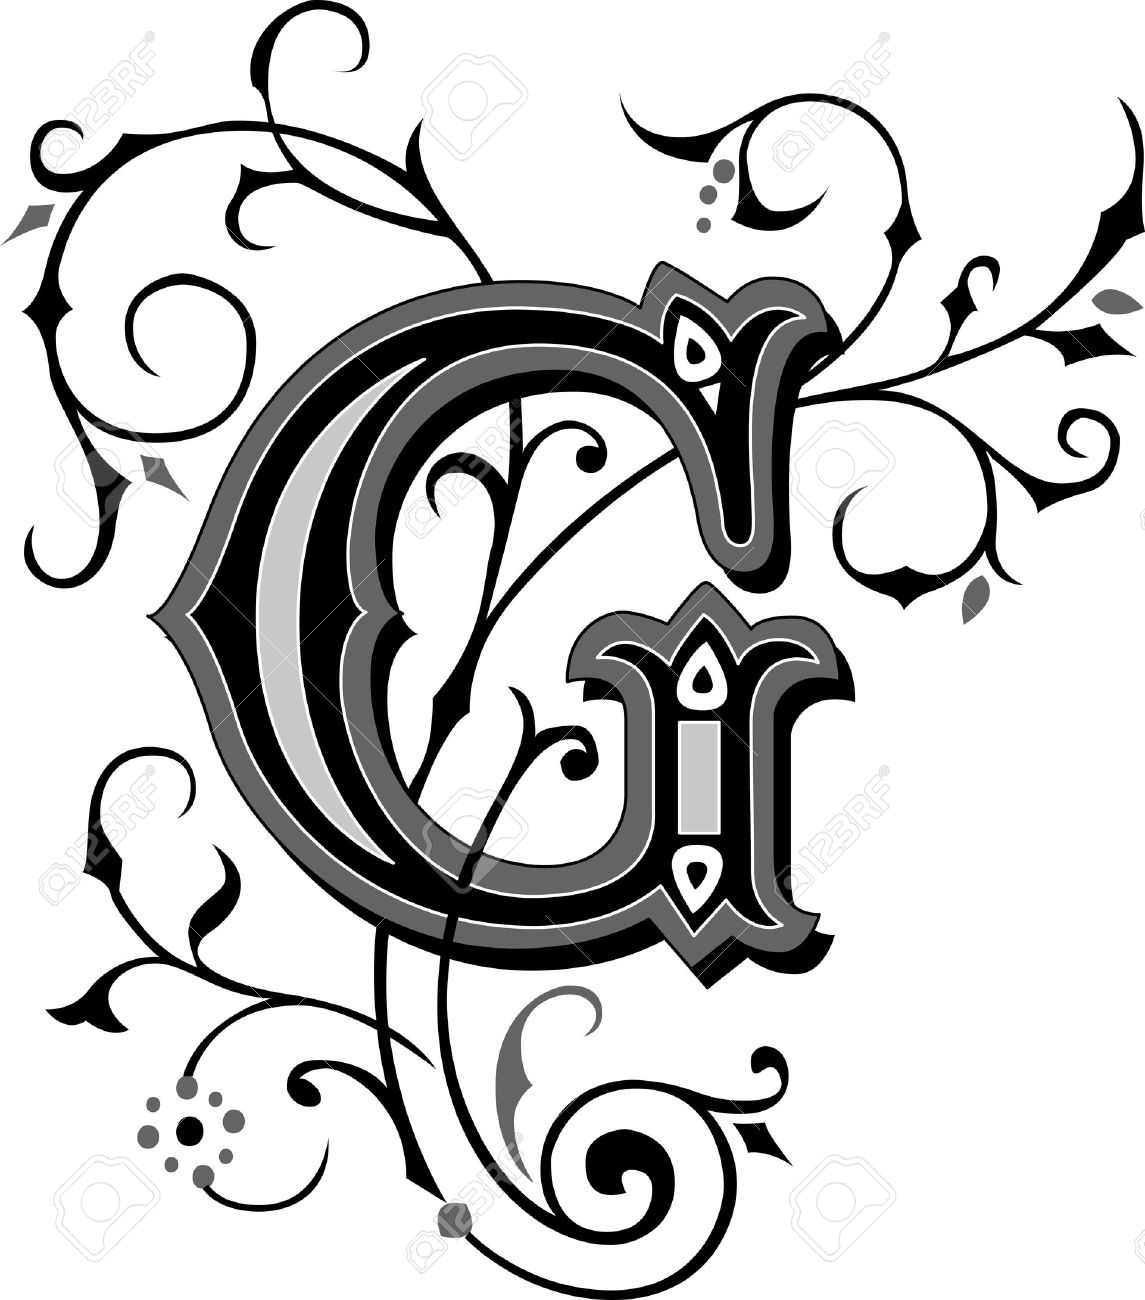 Beautifully Decorated English Alphabets Letter G Royalty Free